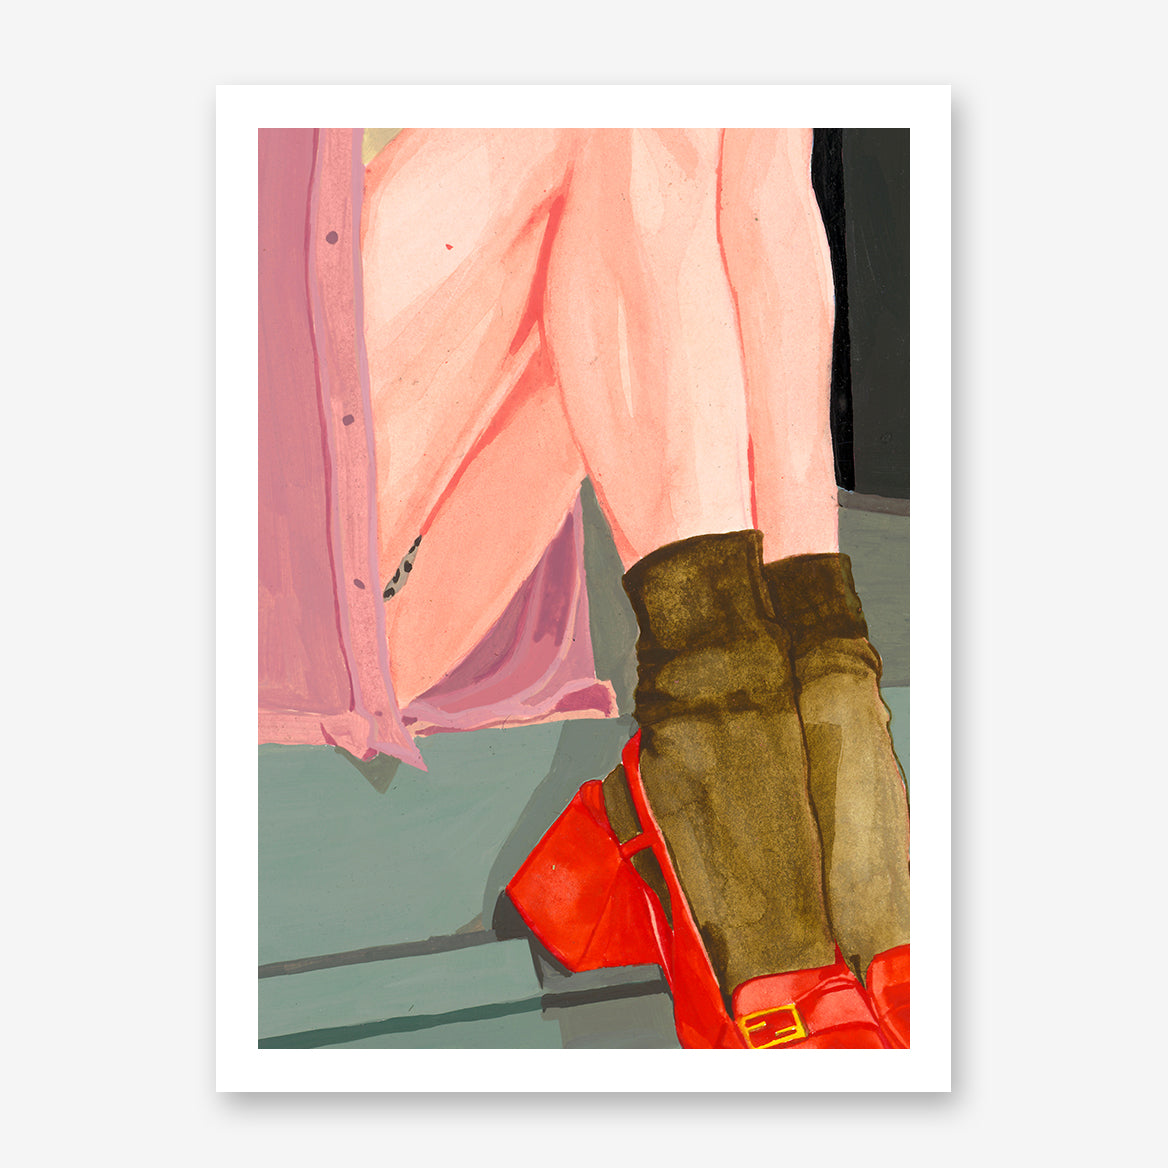 Colourful poster print of an originally painted art, with a woman's legs